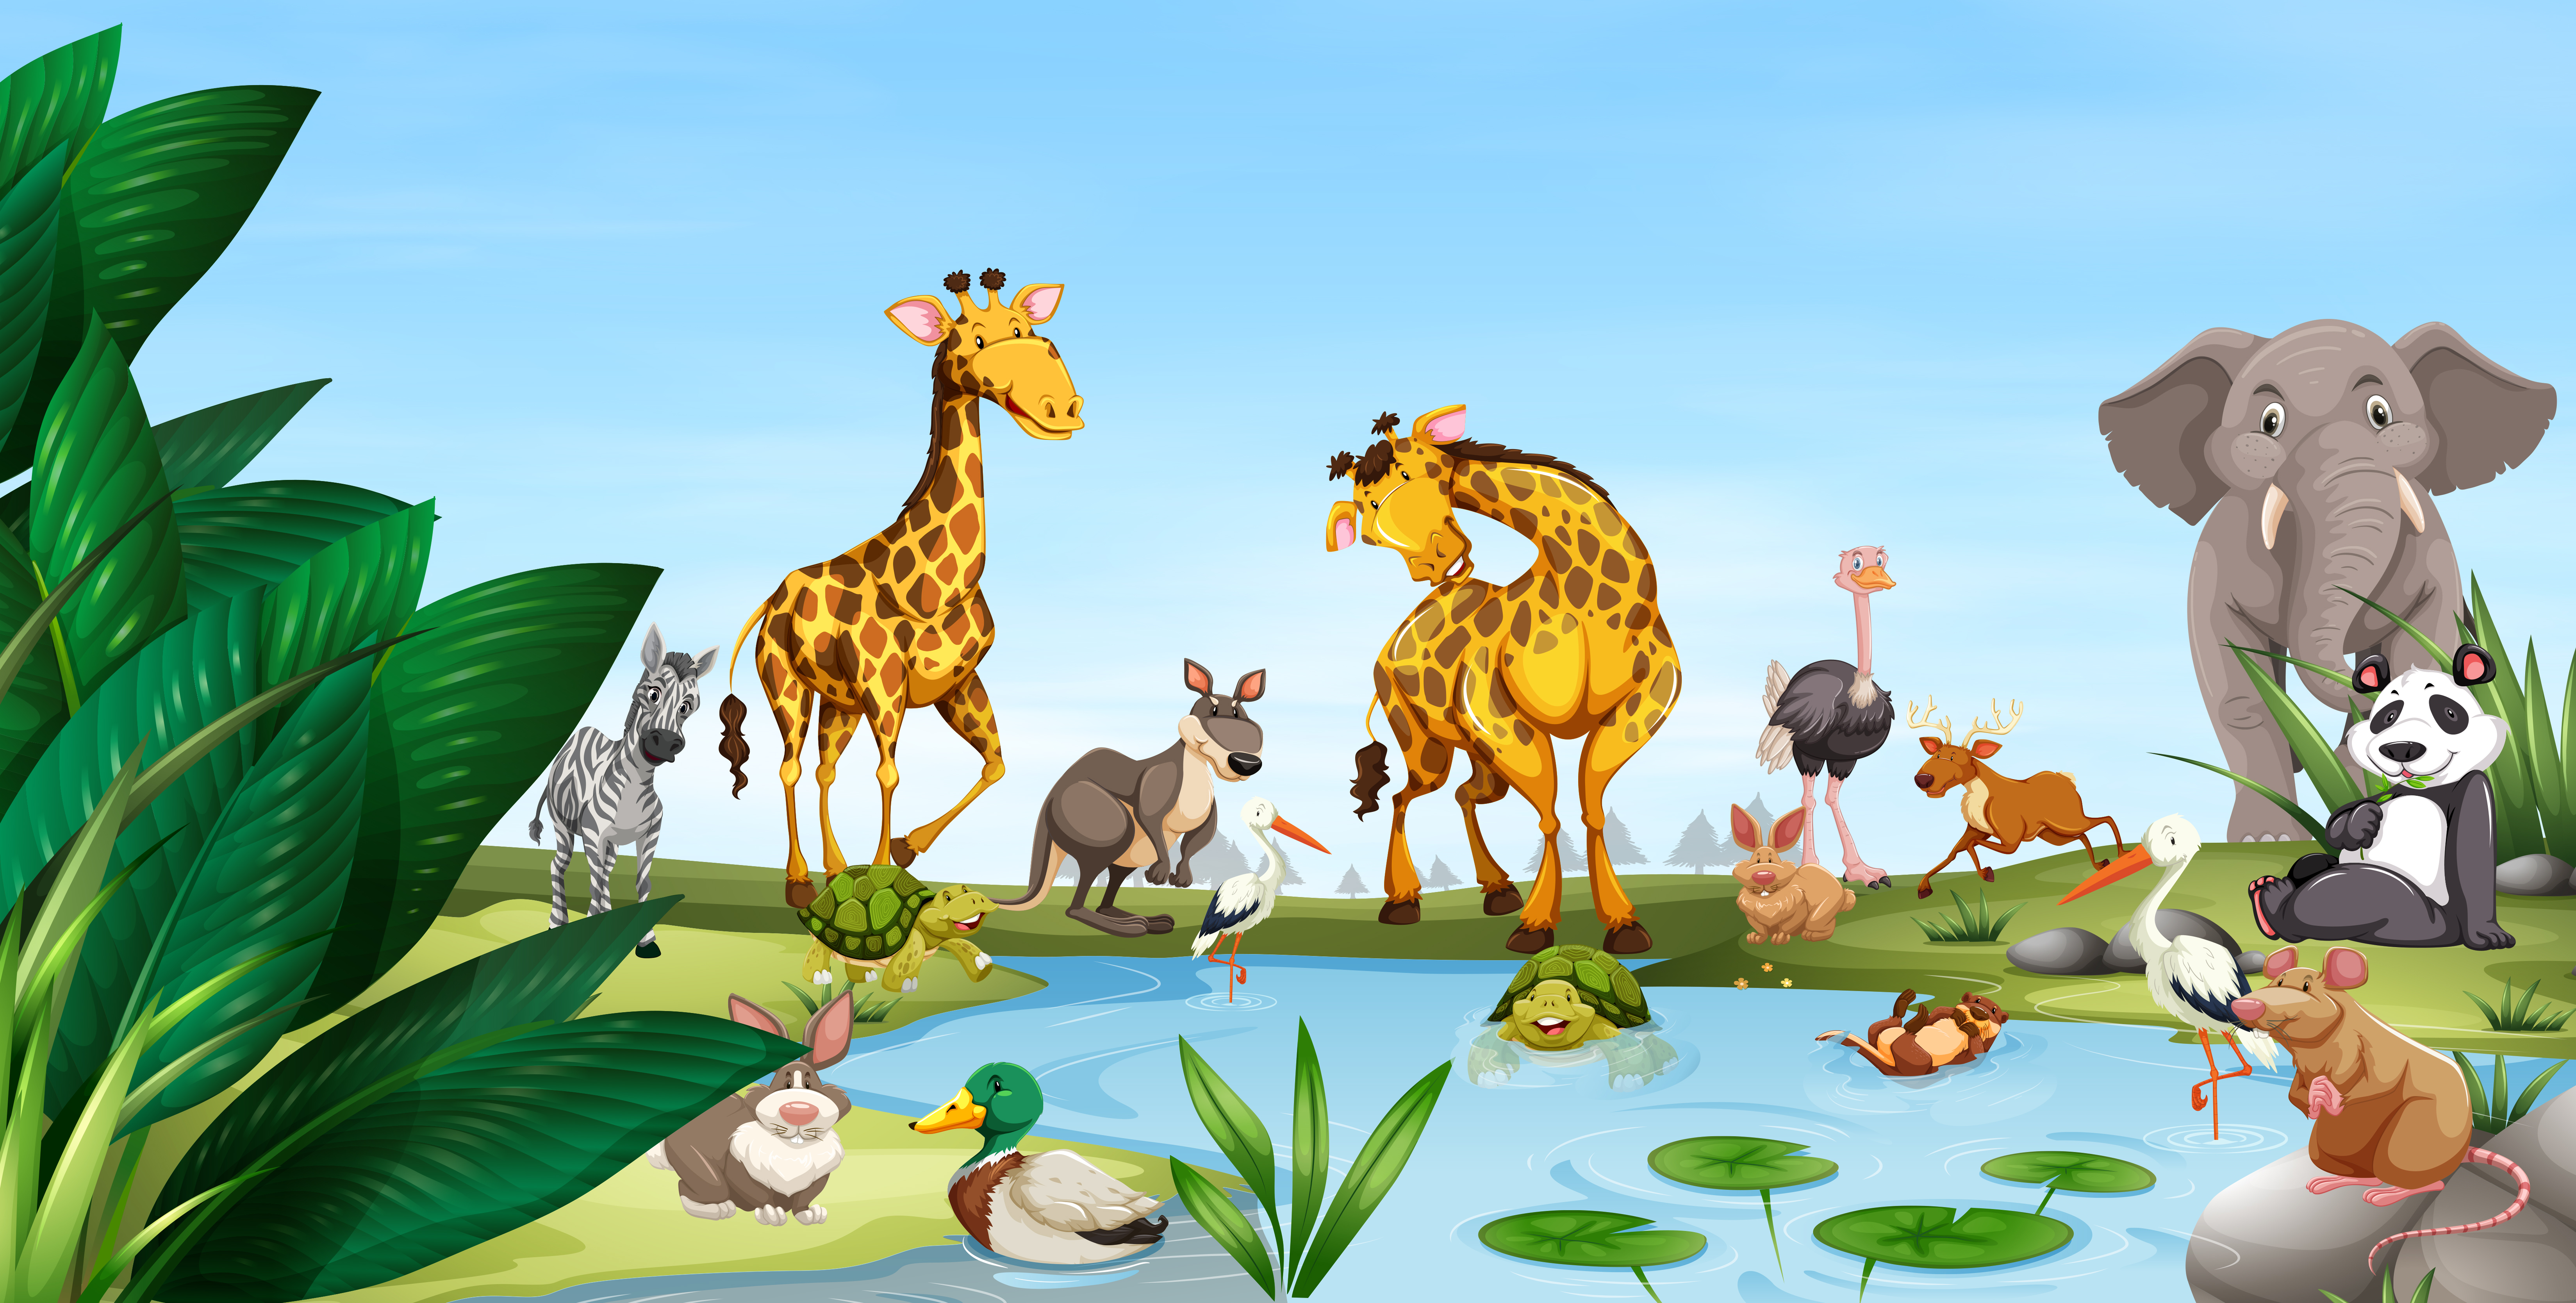 Wild animals by the pond - Download Free Vectors, Clipart ...